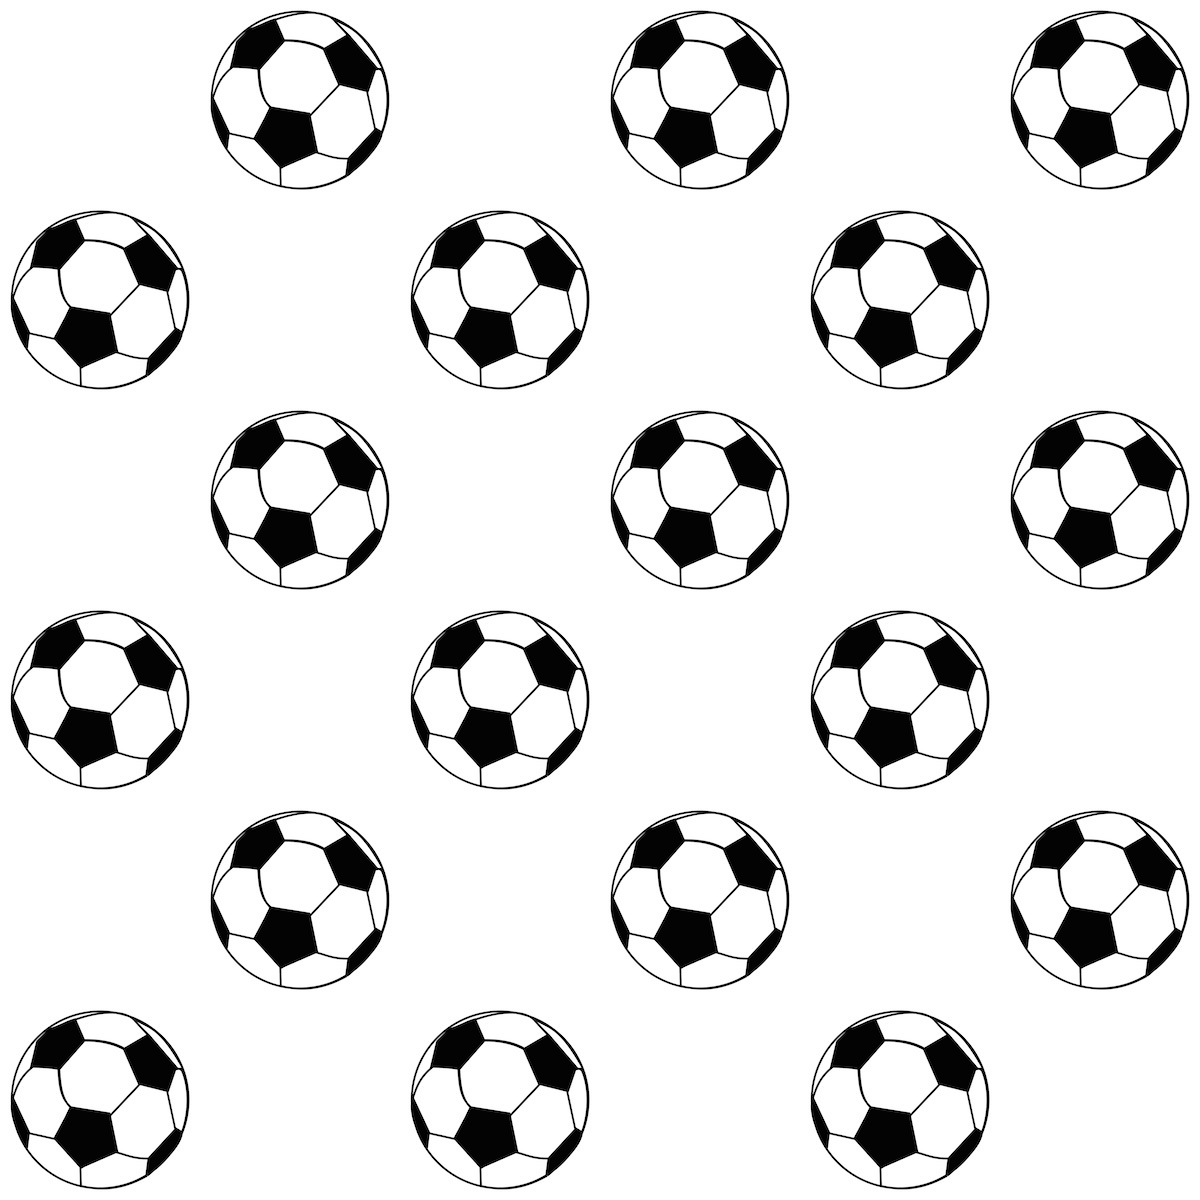 picture regarding Free Printable Football Templates named Printable Foot Cost-free down load least difficult Printable Foot